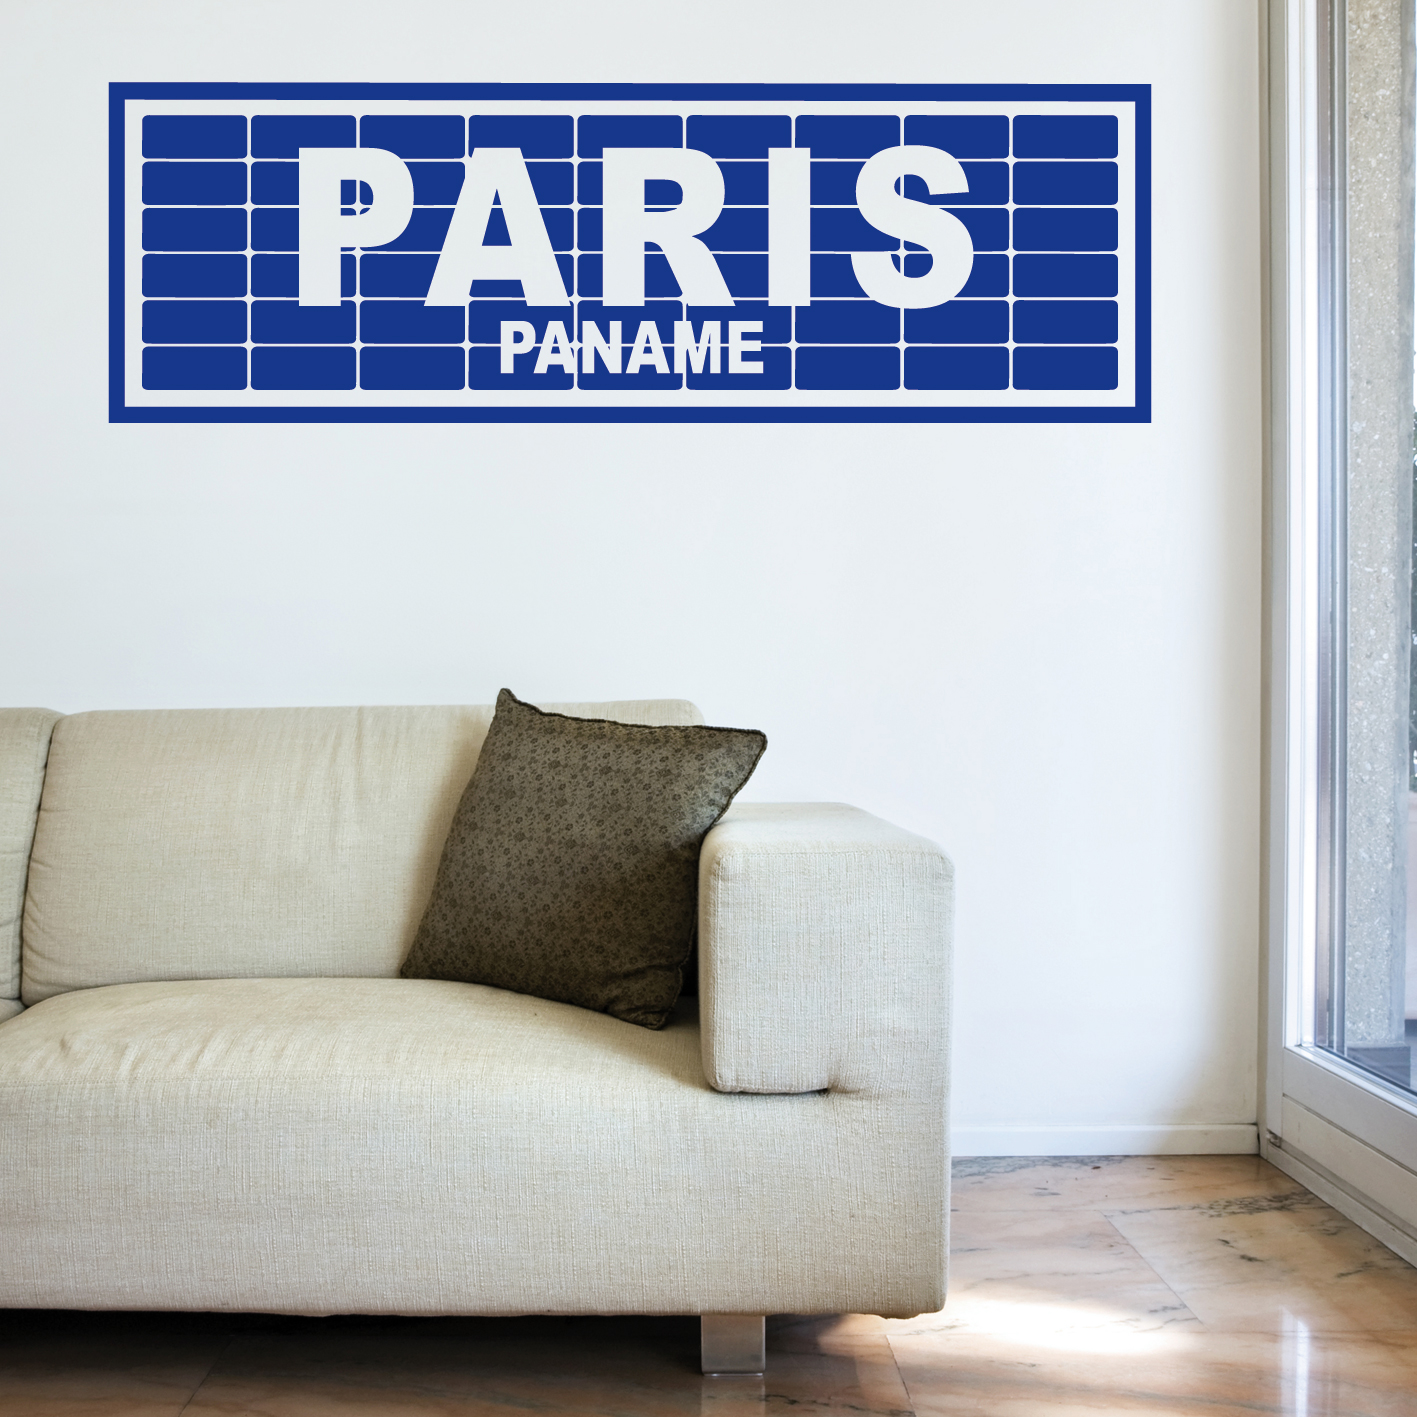 stickers paris paname sti0036 tableaux d co personnalis s contemporain toiles photo agoarts. Black Bedroom Furniture Sets. Home Design Ideas